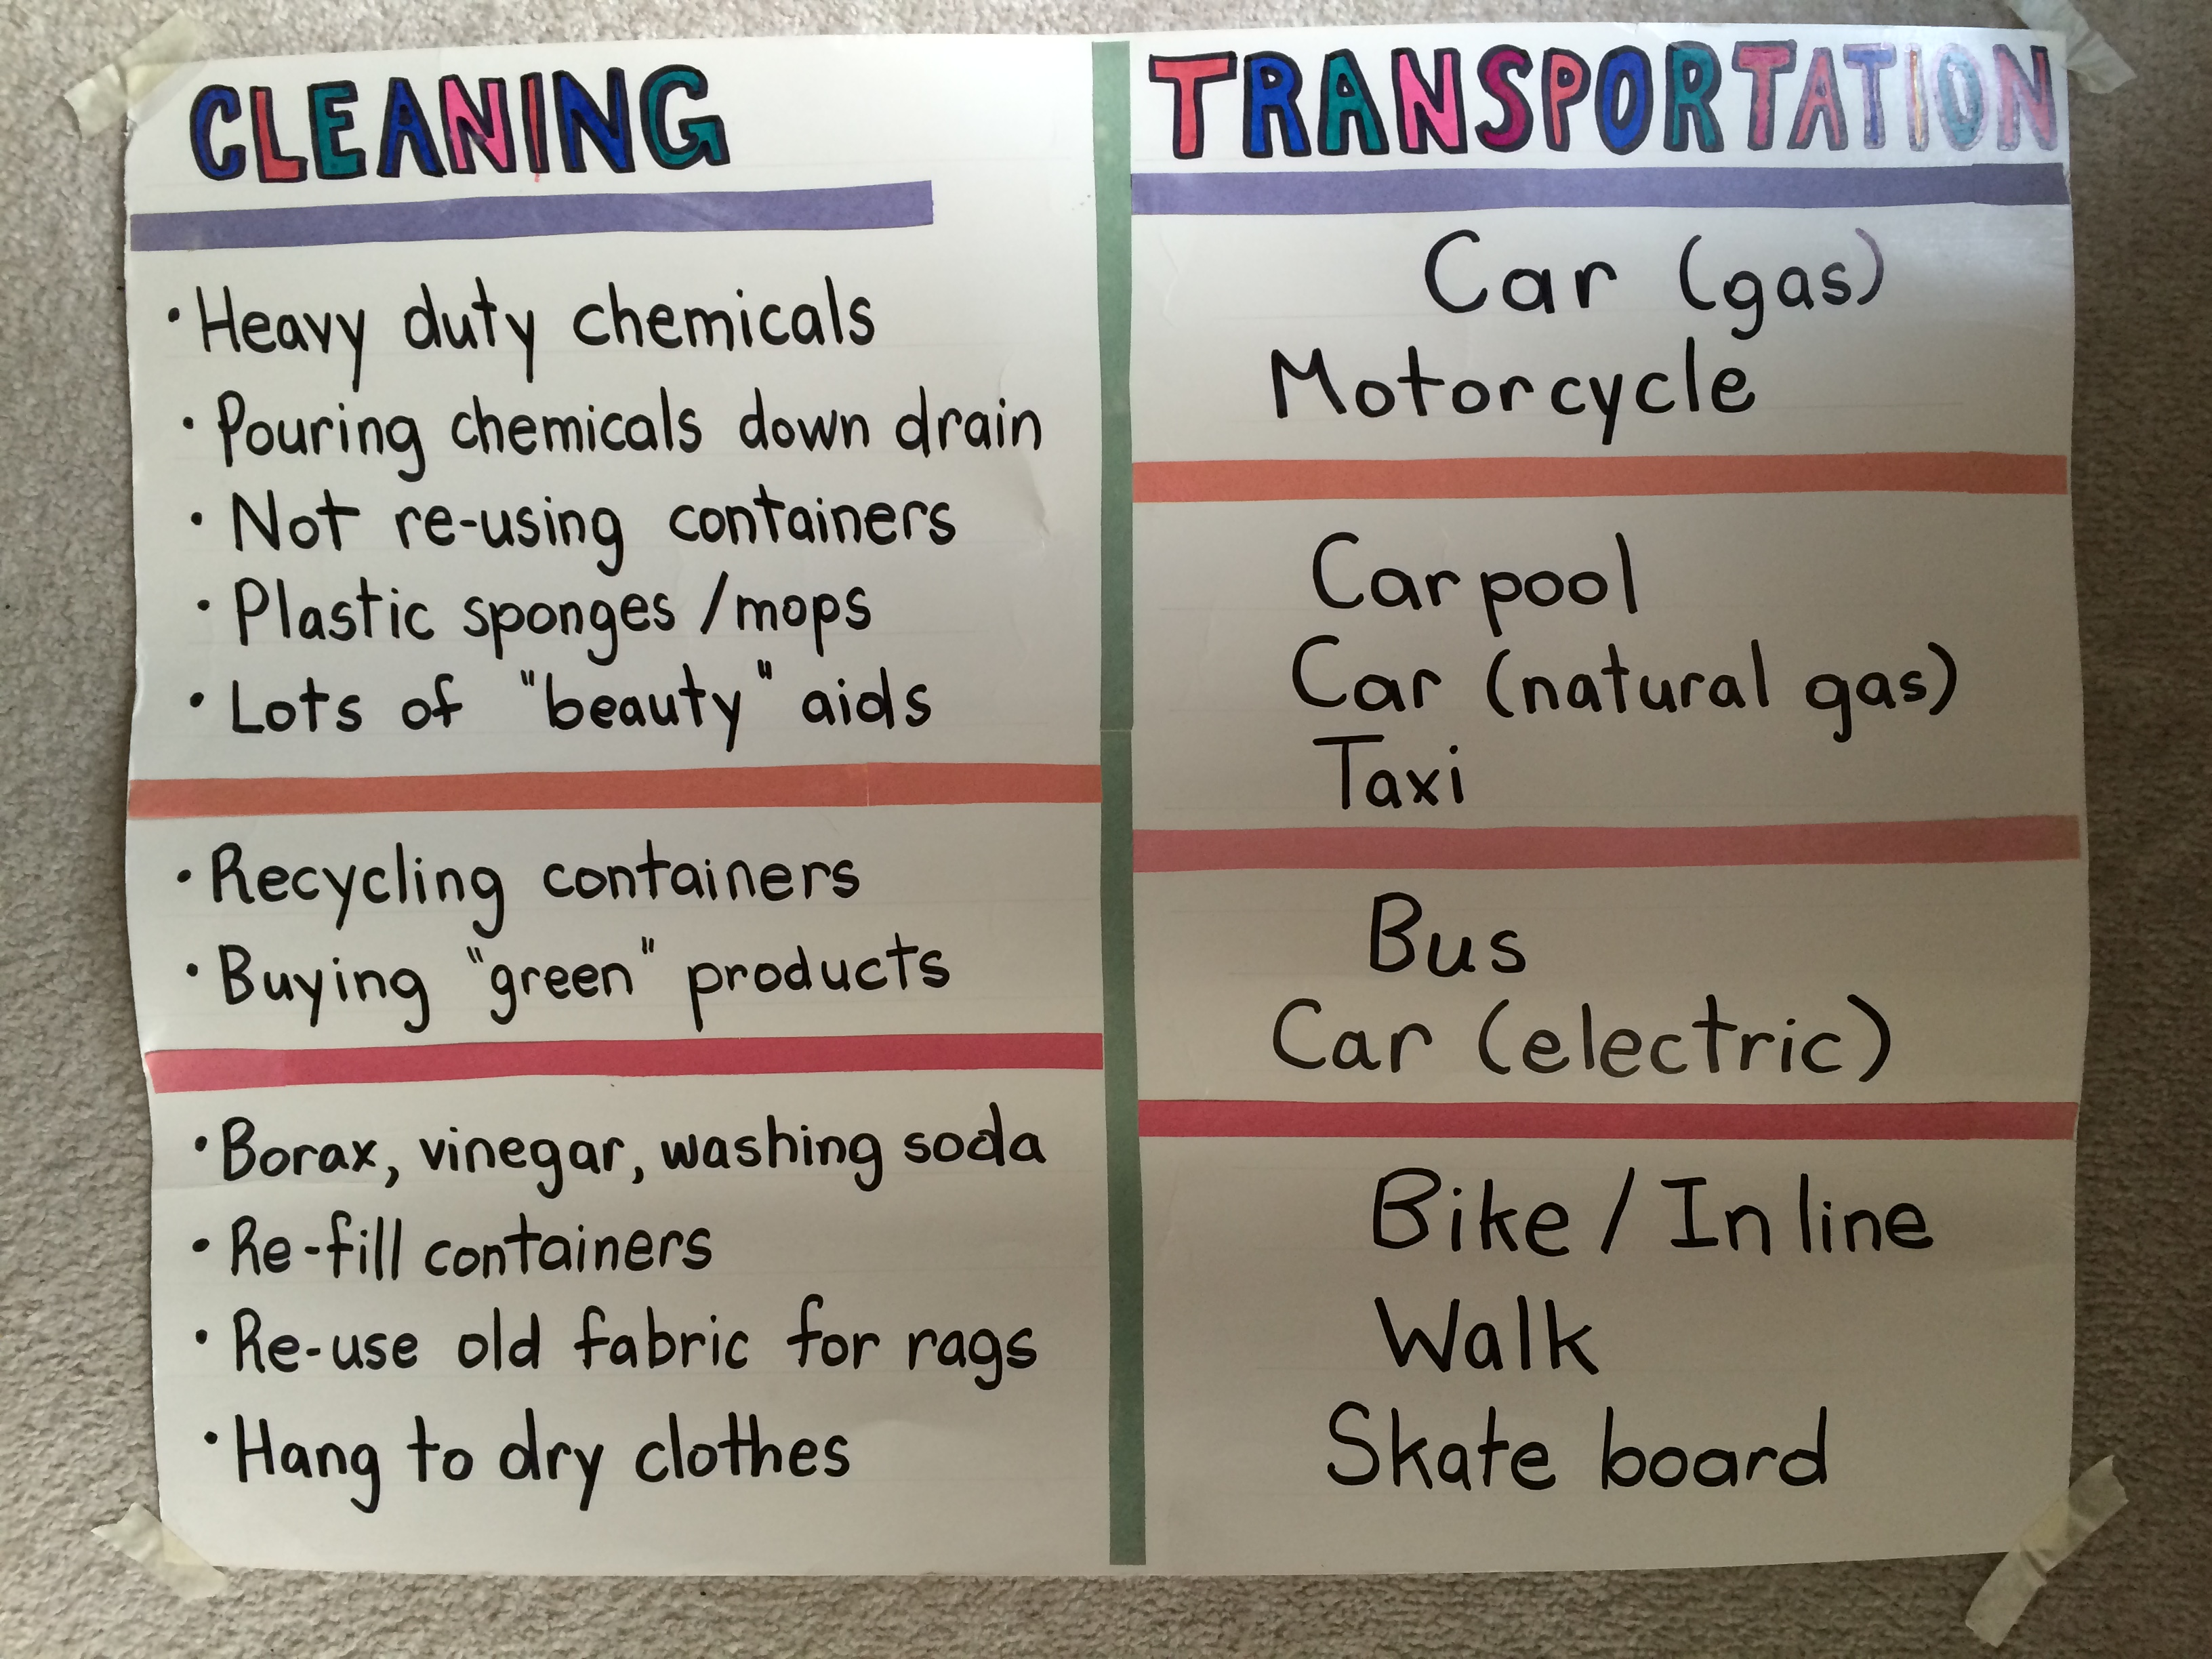 Cleaning & transportation green lifestyle tips - spectrum of choices from least green to most green - poster from ~1995